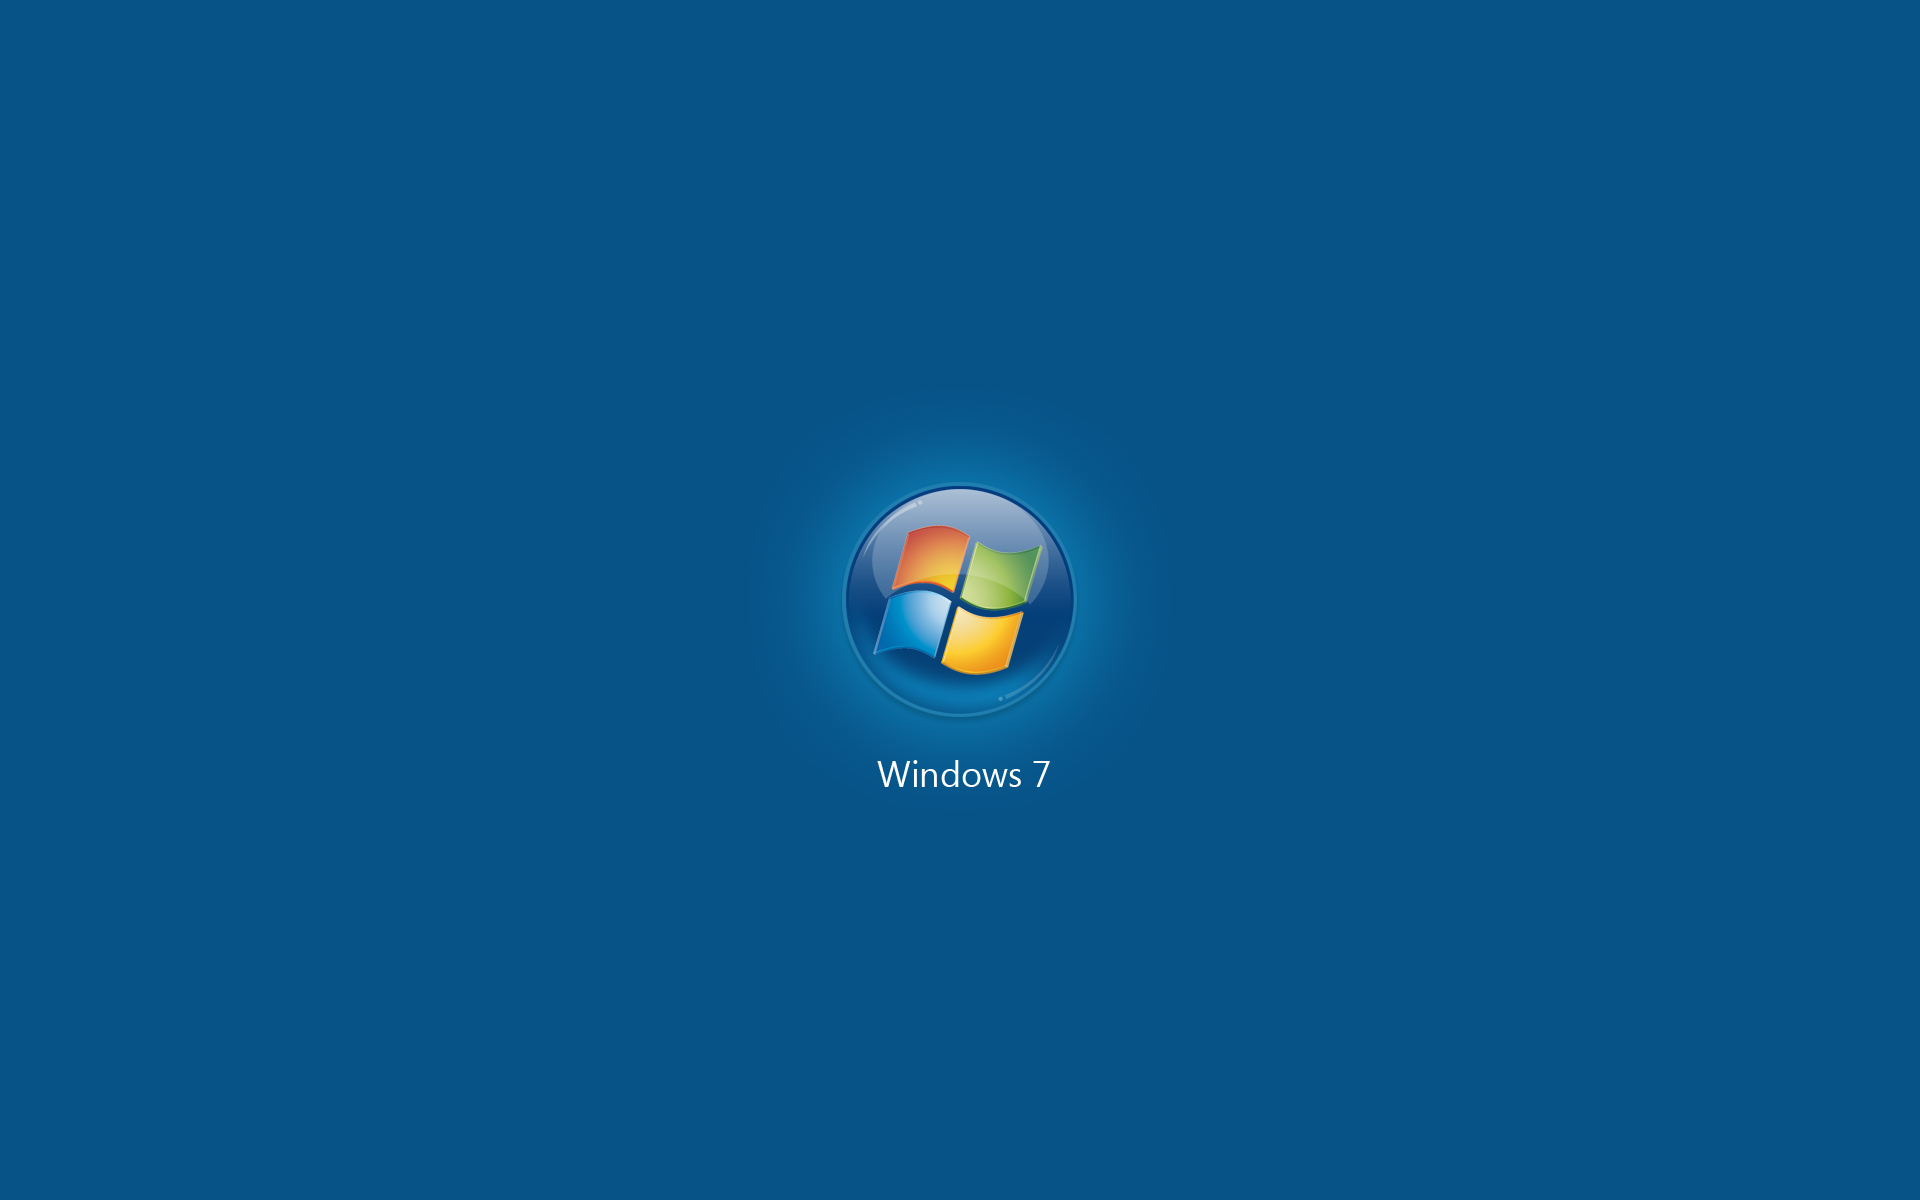 Win 7 Wallpaper Posted By John Thompson